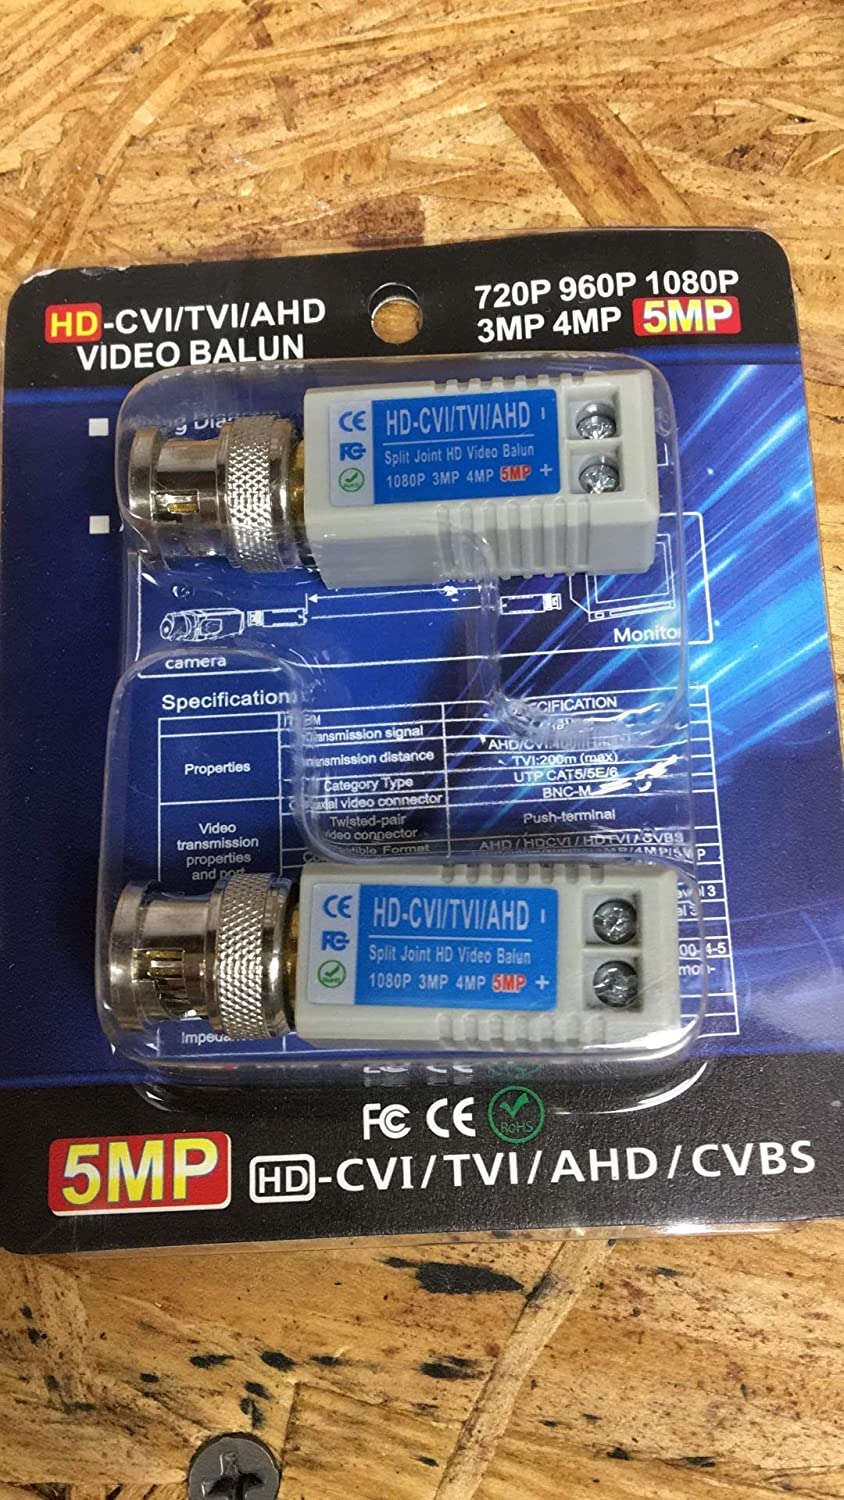 500 (250 Pack of 2) Mini CCTV BNC Video Balun Network CAT5 Connector US SELLER